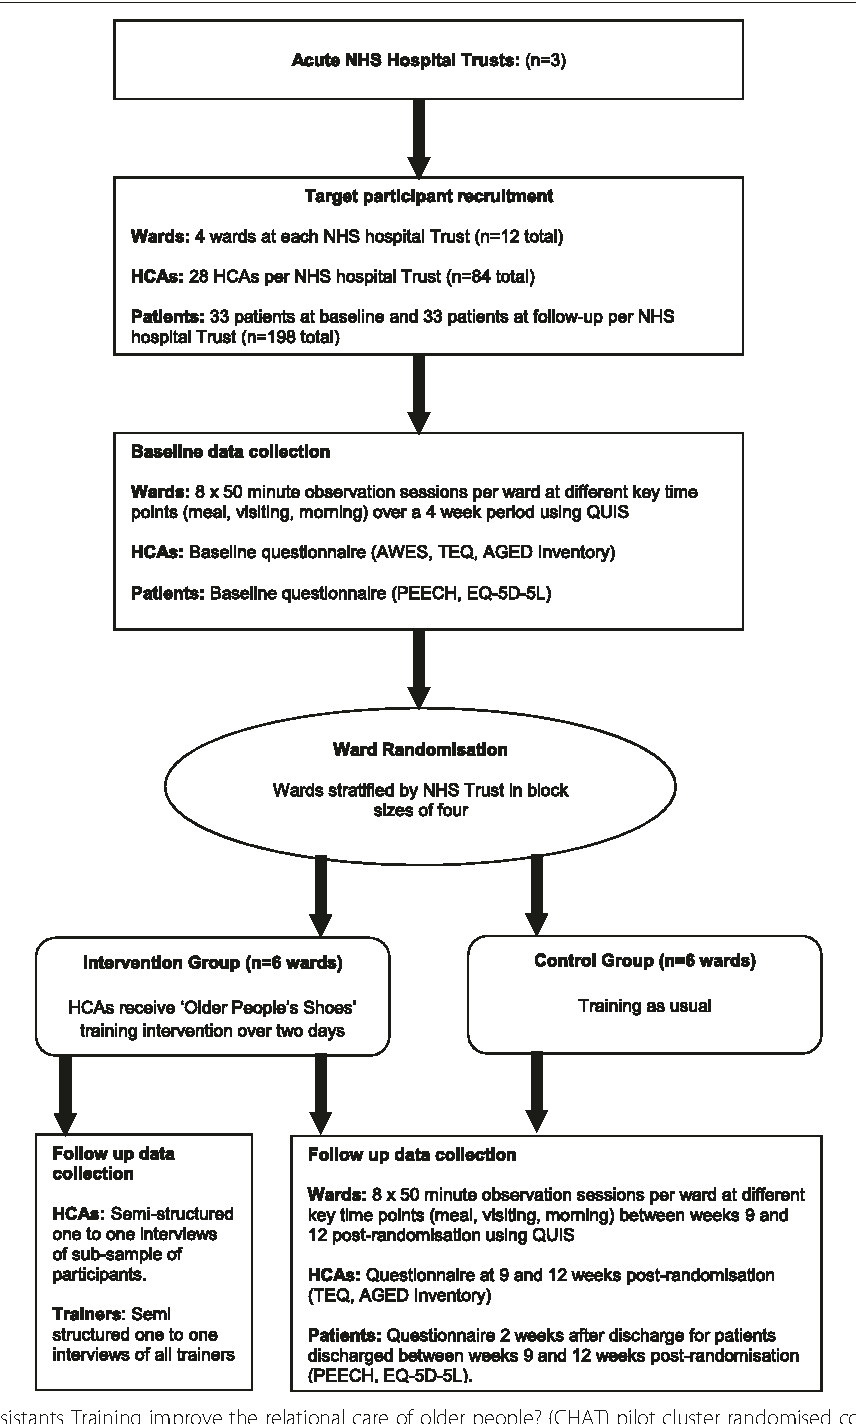 Fig. 1 Can Healthcare Assistants Training improve the relational care of older people? (CHAT) pilot cluster randomised controlled trial design